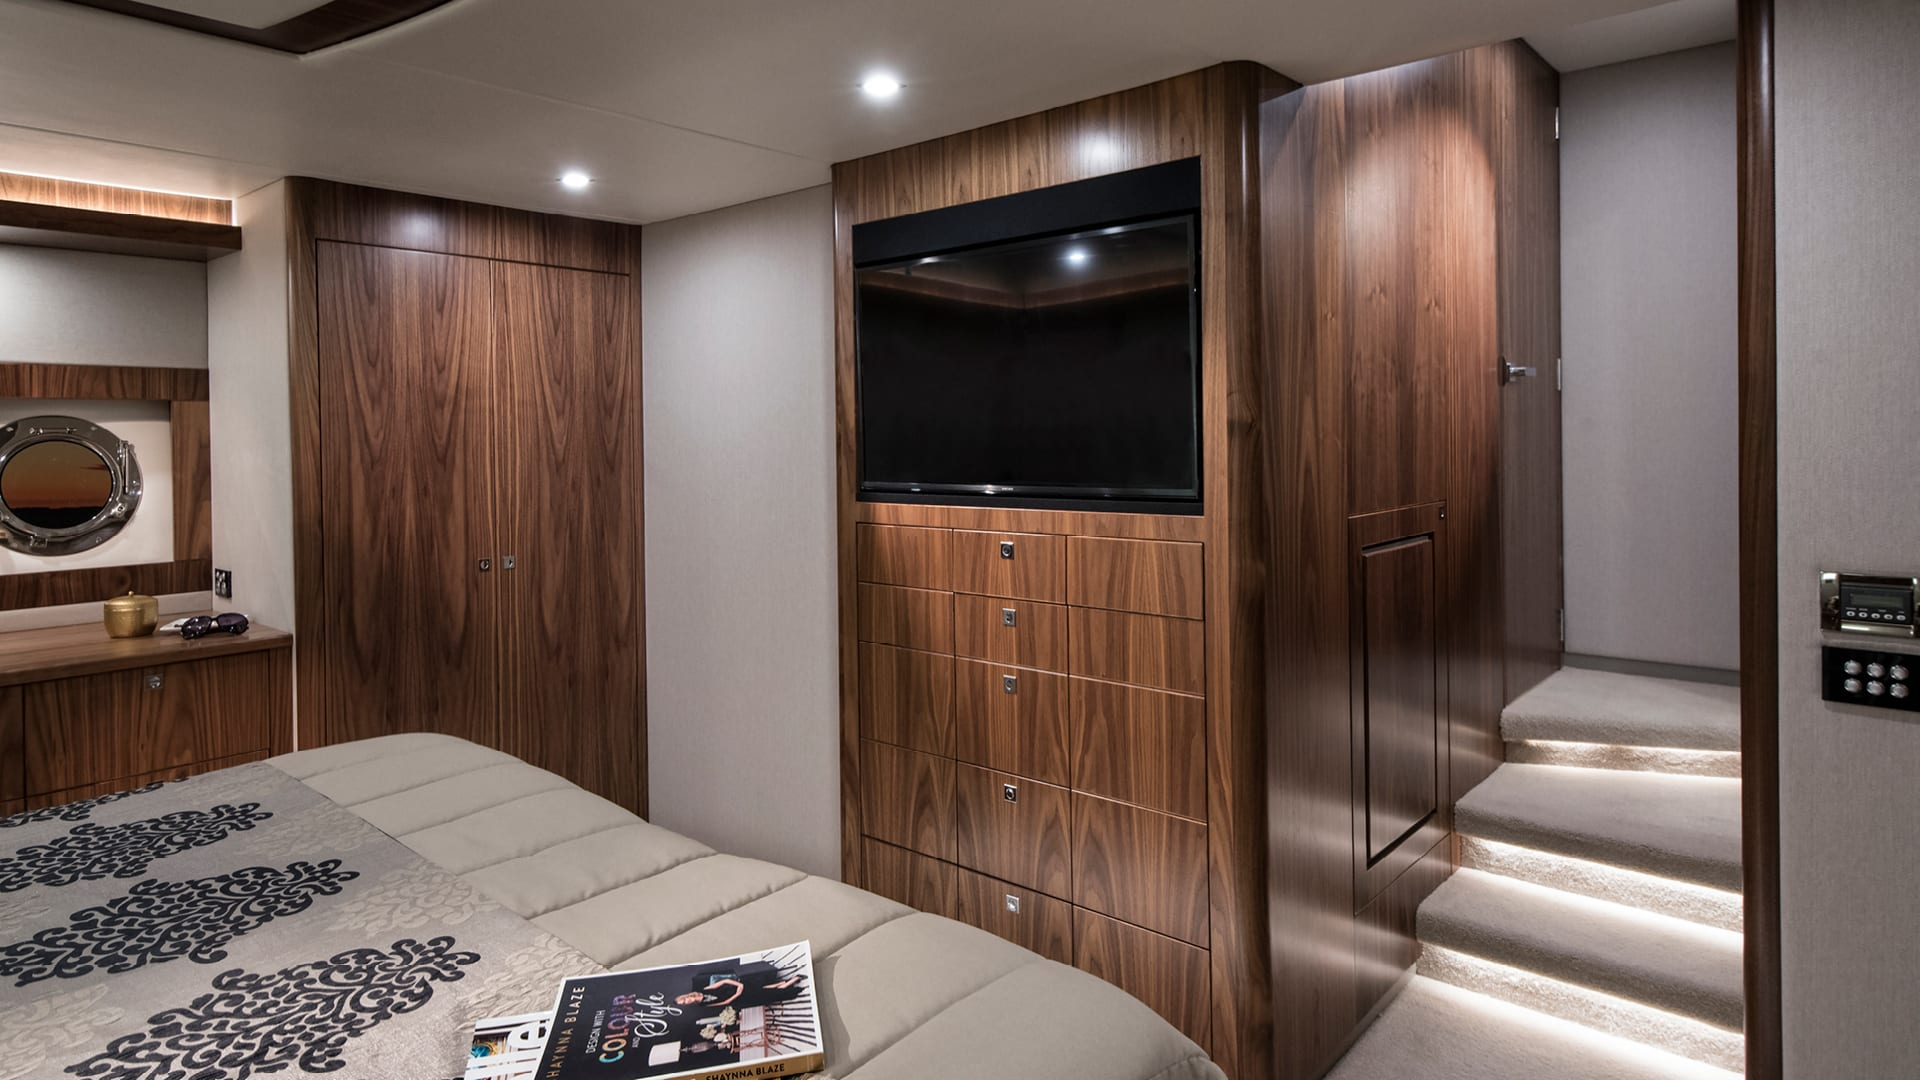 Riviera 72 Sports Motor Yacht Presidential Stateroom Entertainment Centre – Satin Walnut Timber Finish